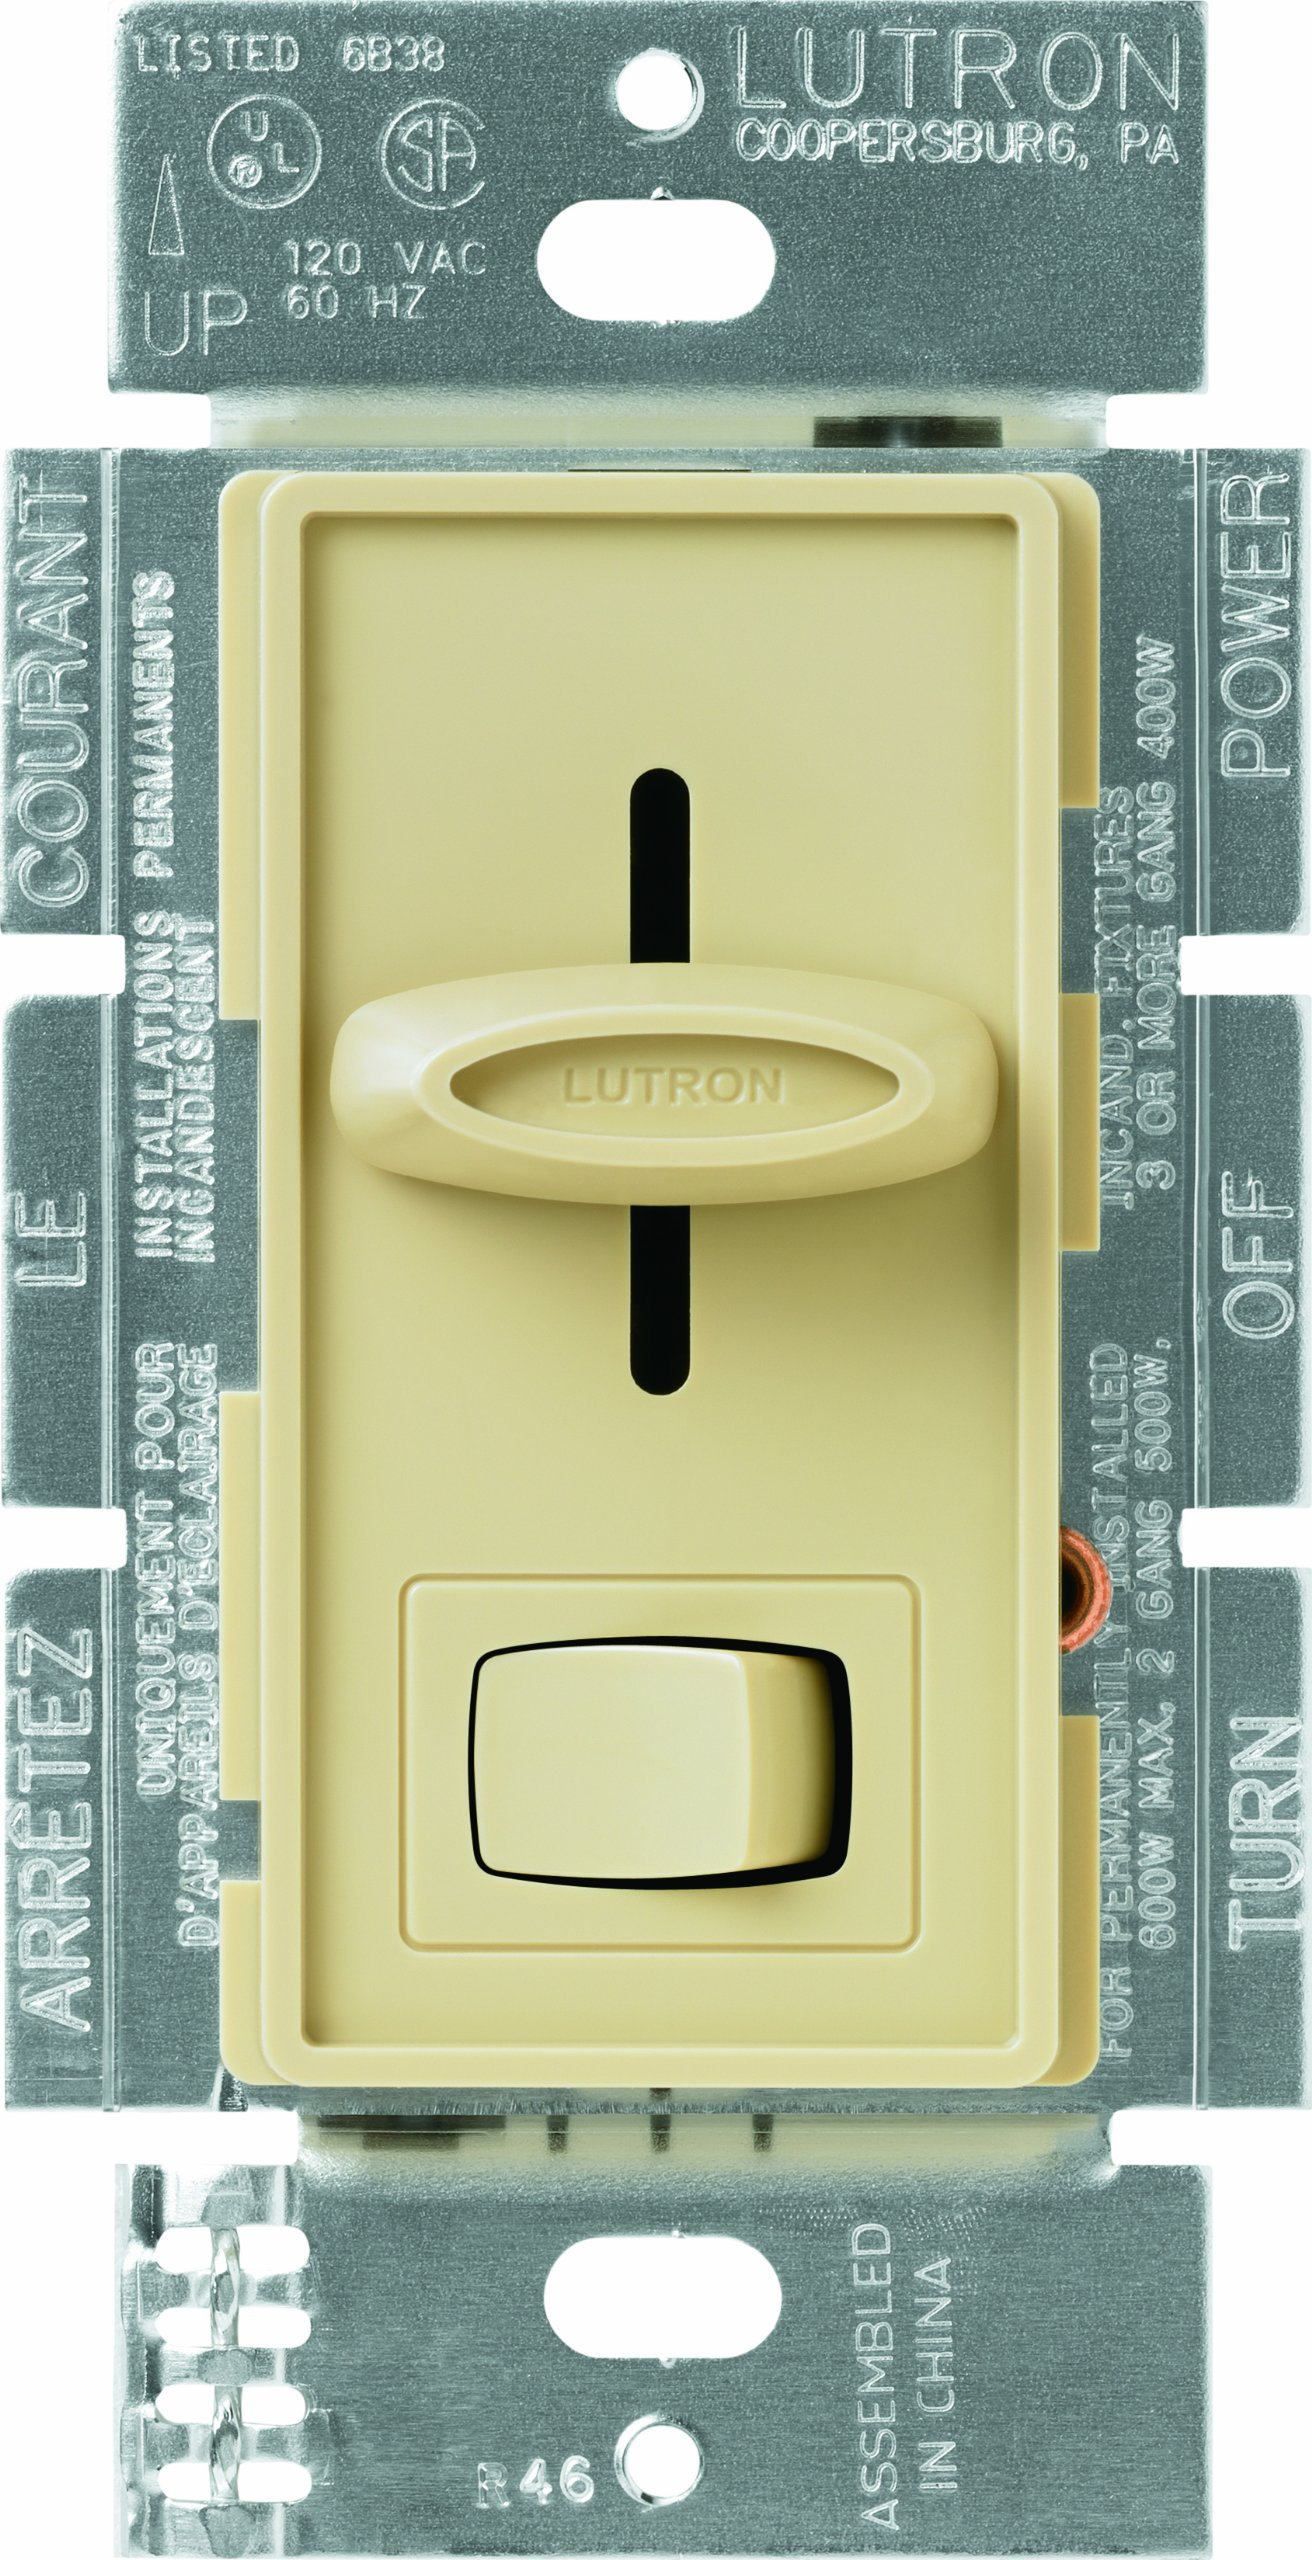 Lutron SELV-300P-IV Skylark Single Pole Electronic Low-Voltage Dimmer with On/Off Switch, 300-watt, Ivory